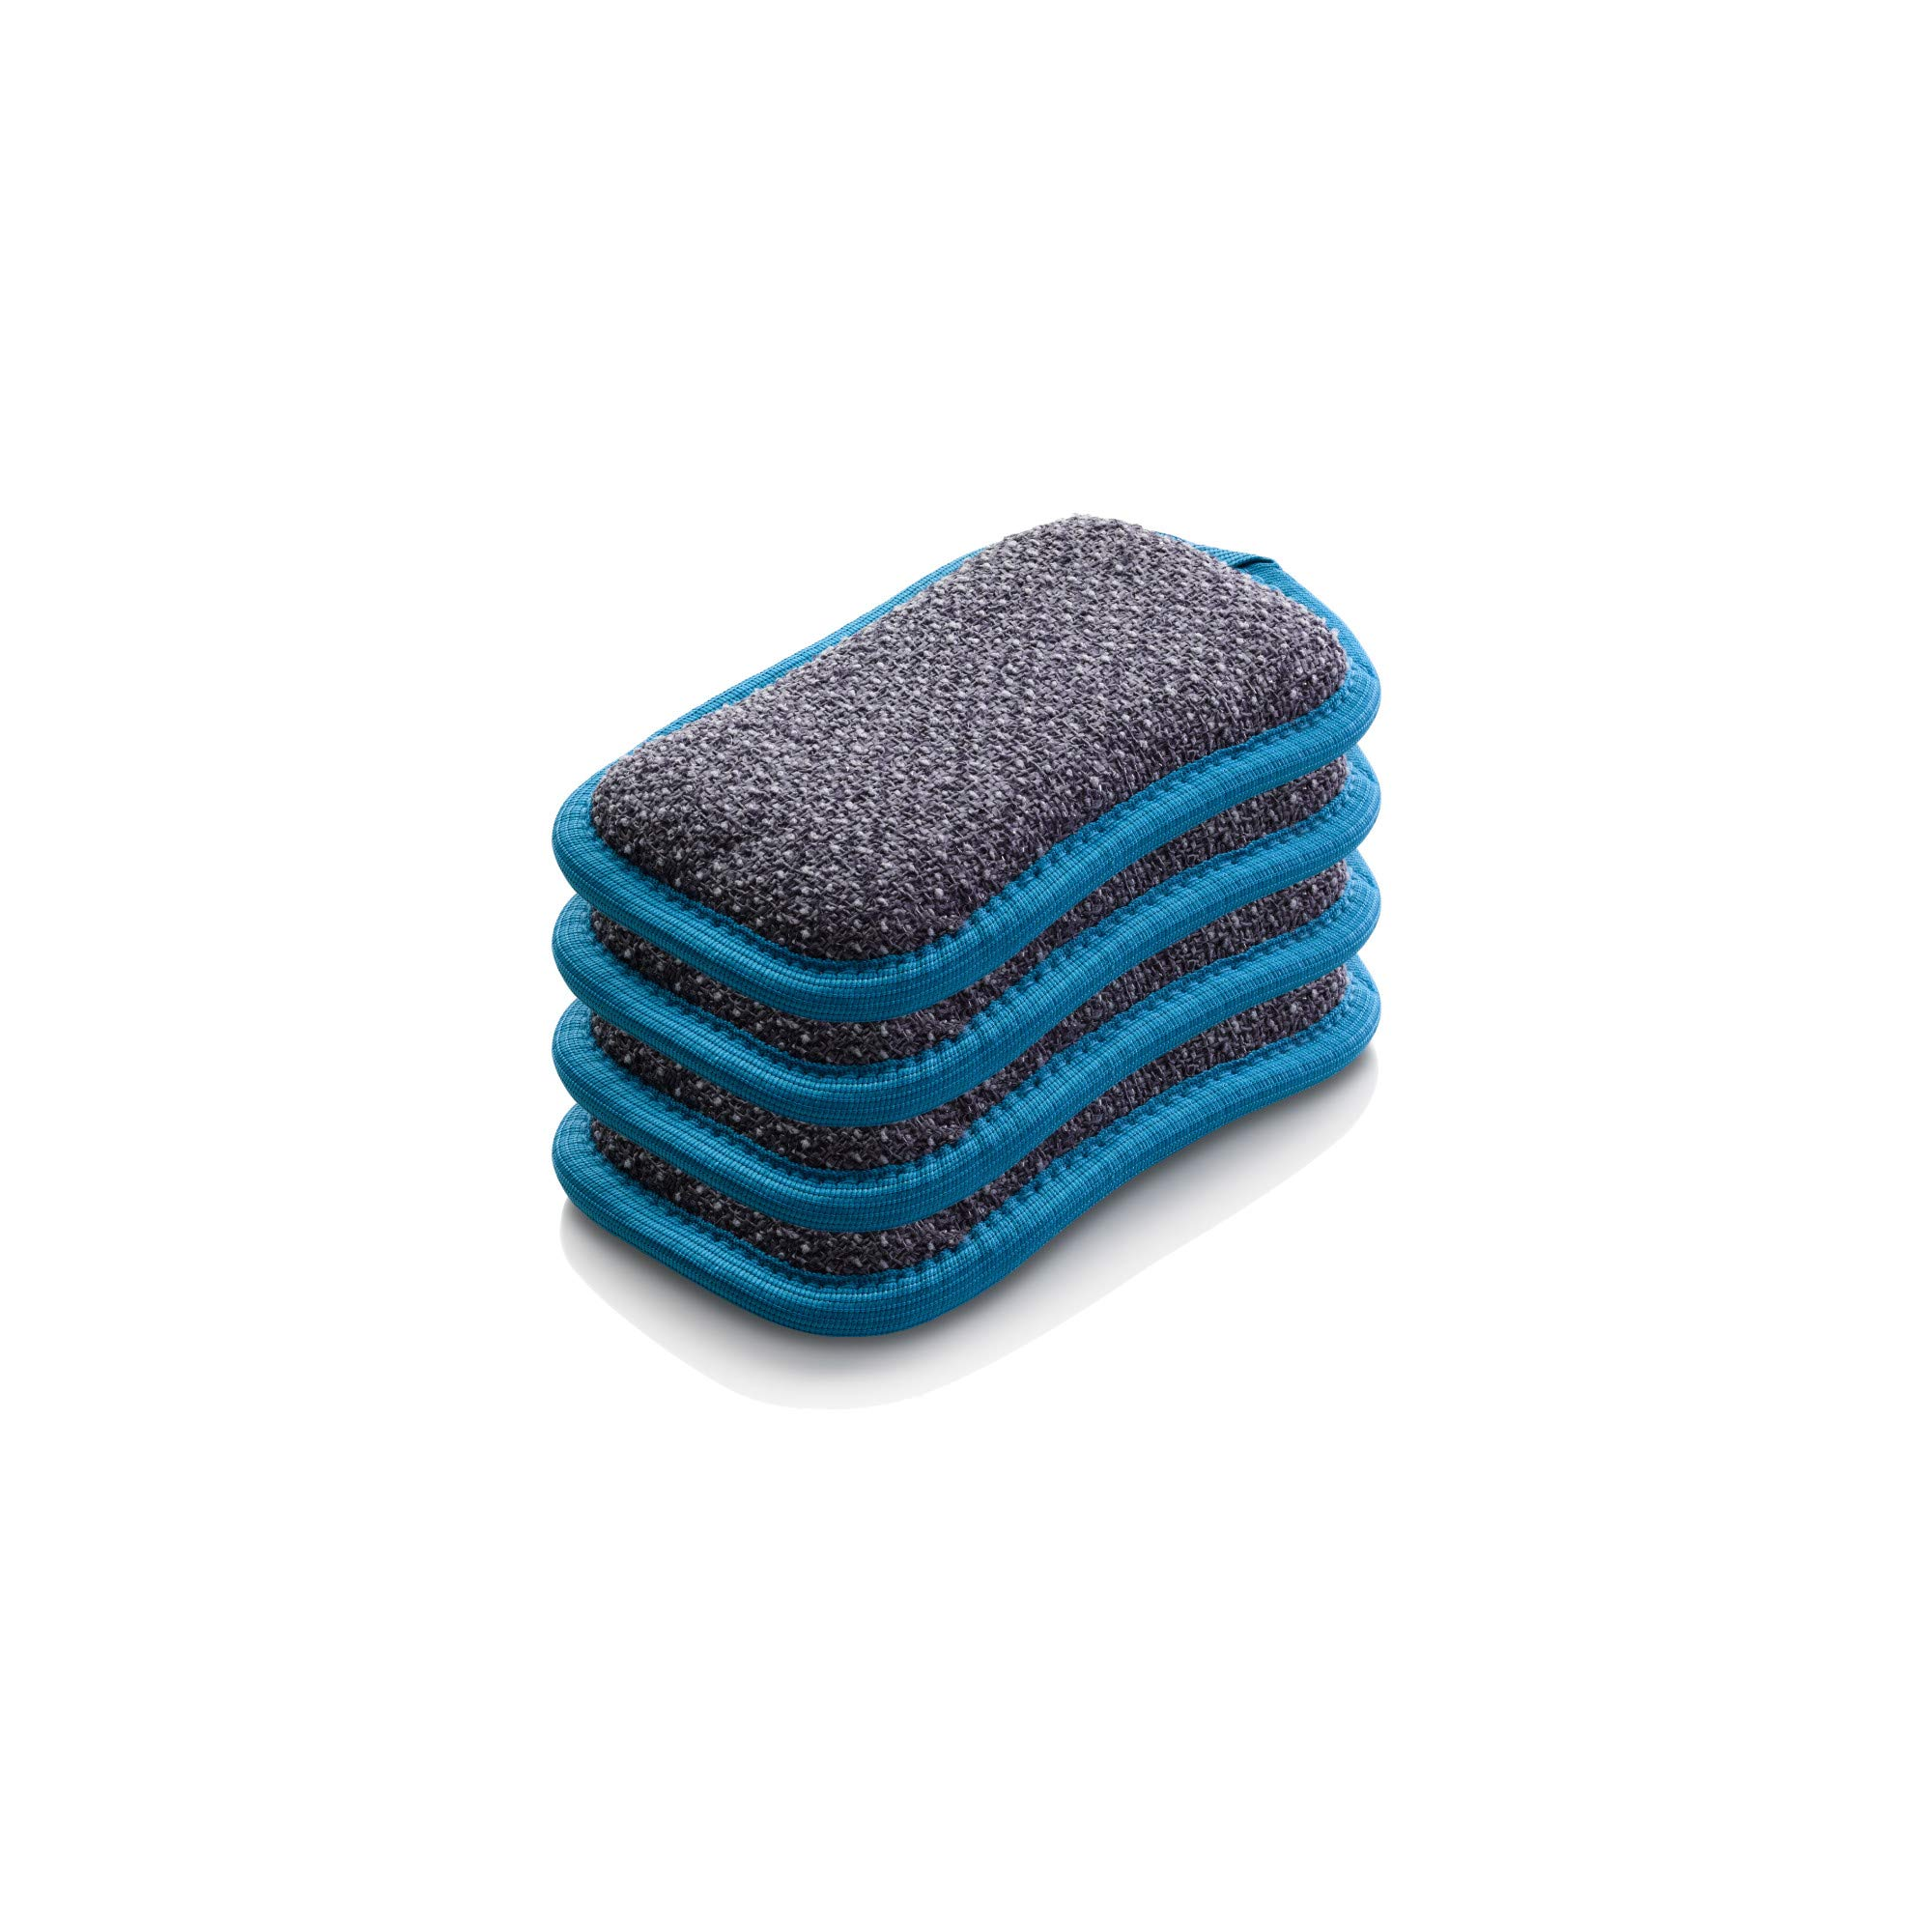 E-Cloth Microfiber Dual Purpose Washing Up Pad, Blue, 4 Count